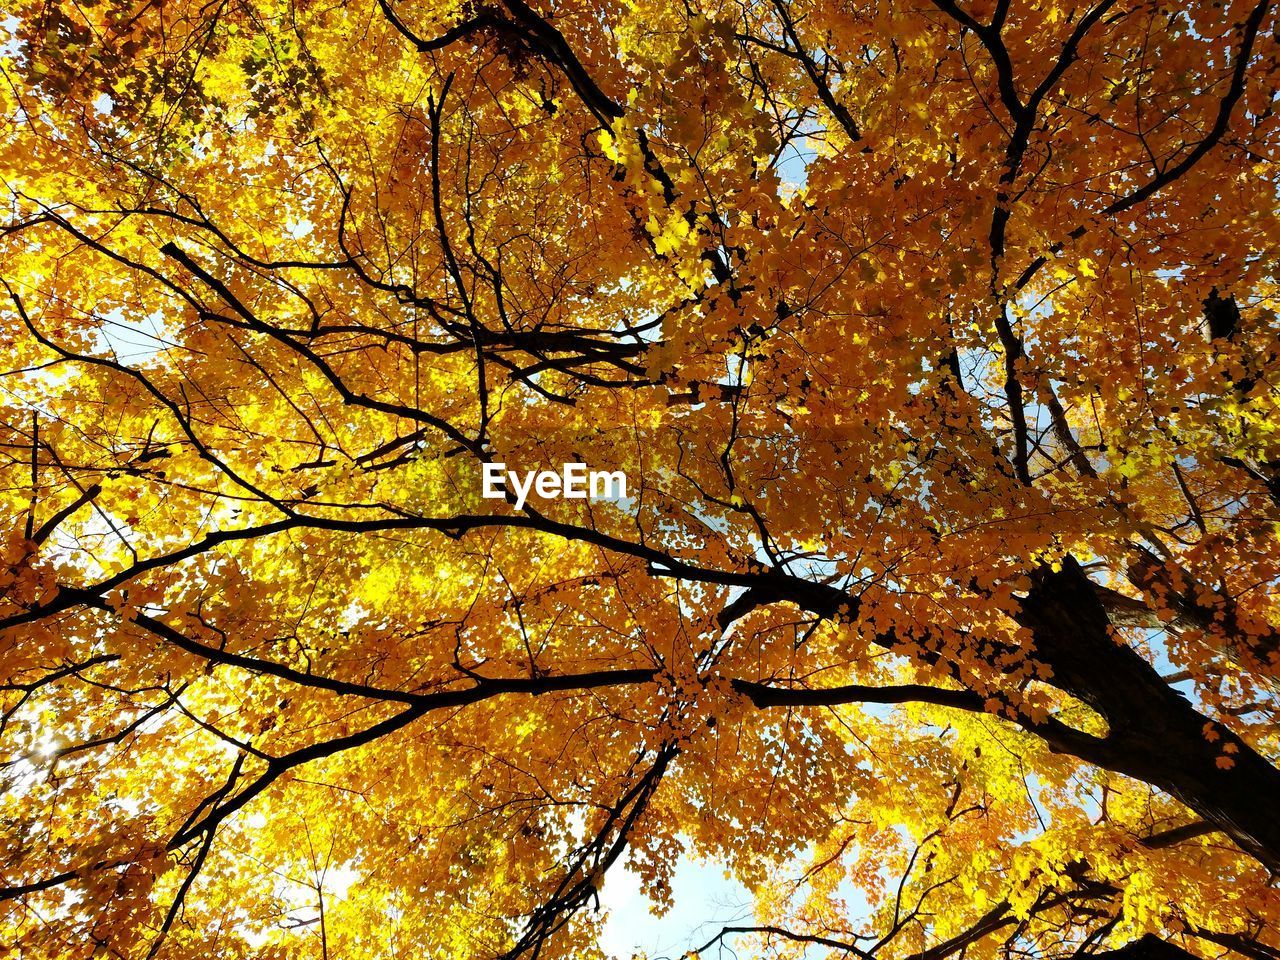 autumn, tree, change, plant, branch, growth, low angle view, beauty in nature, yellow, leaf, nature, plant part, no people, full frame, backgrounds, day, orange color, outdoors, tree trunk, trunk, maple leaf, tree canopy, autumn collection, fall, leaves, natural condition, directly below